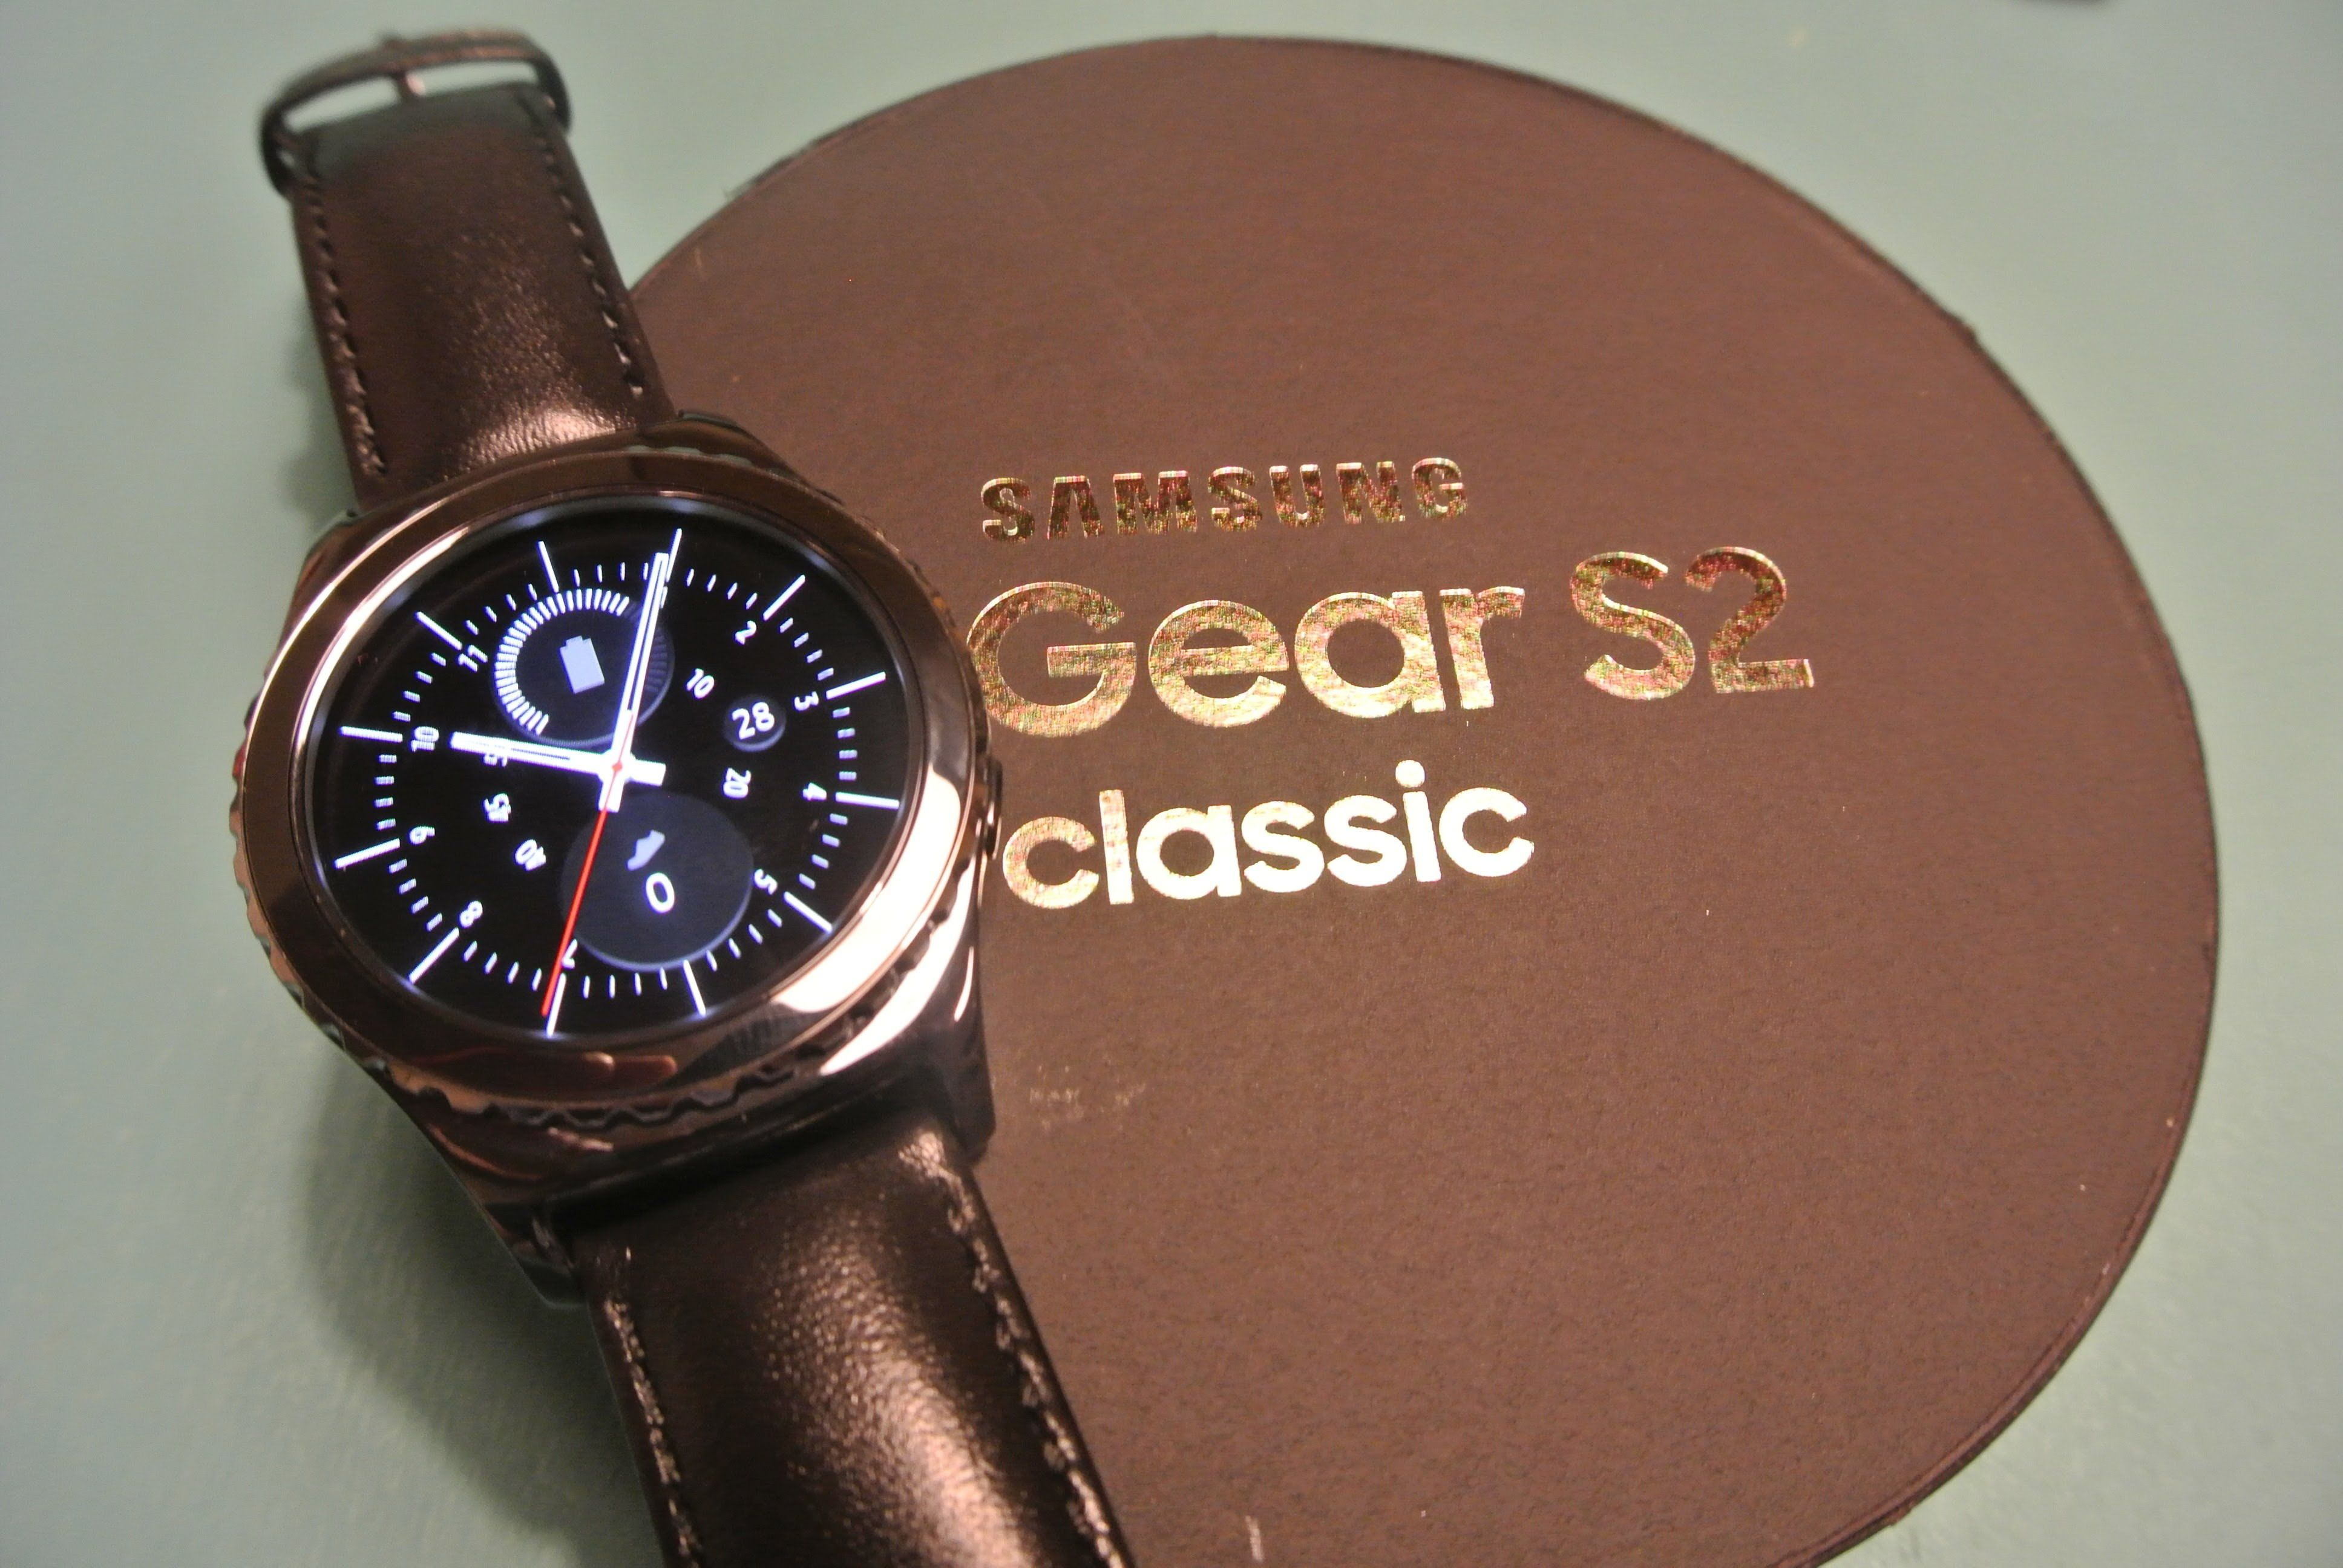 Samsung Gear S2 Classic Unboxing And Setup Samsung Gear S2 Classic Gear S2 Samsung Gear